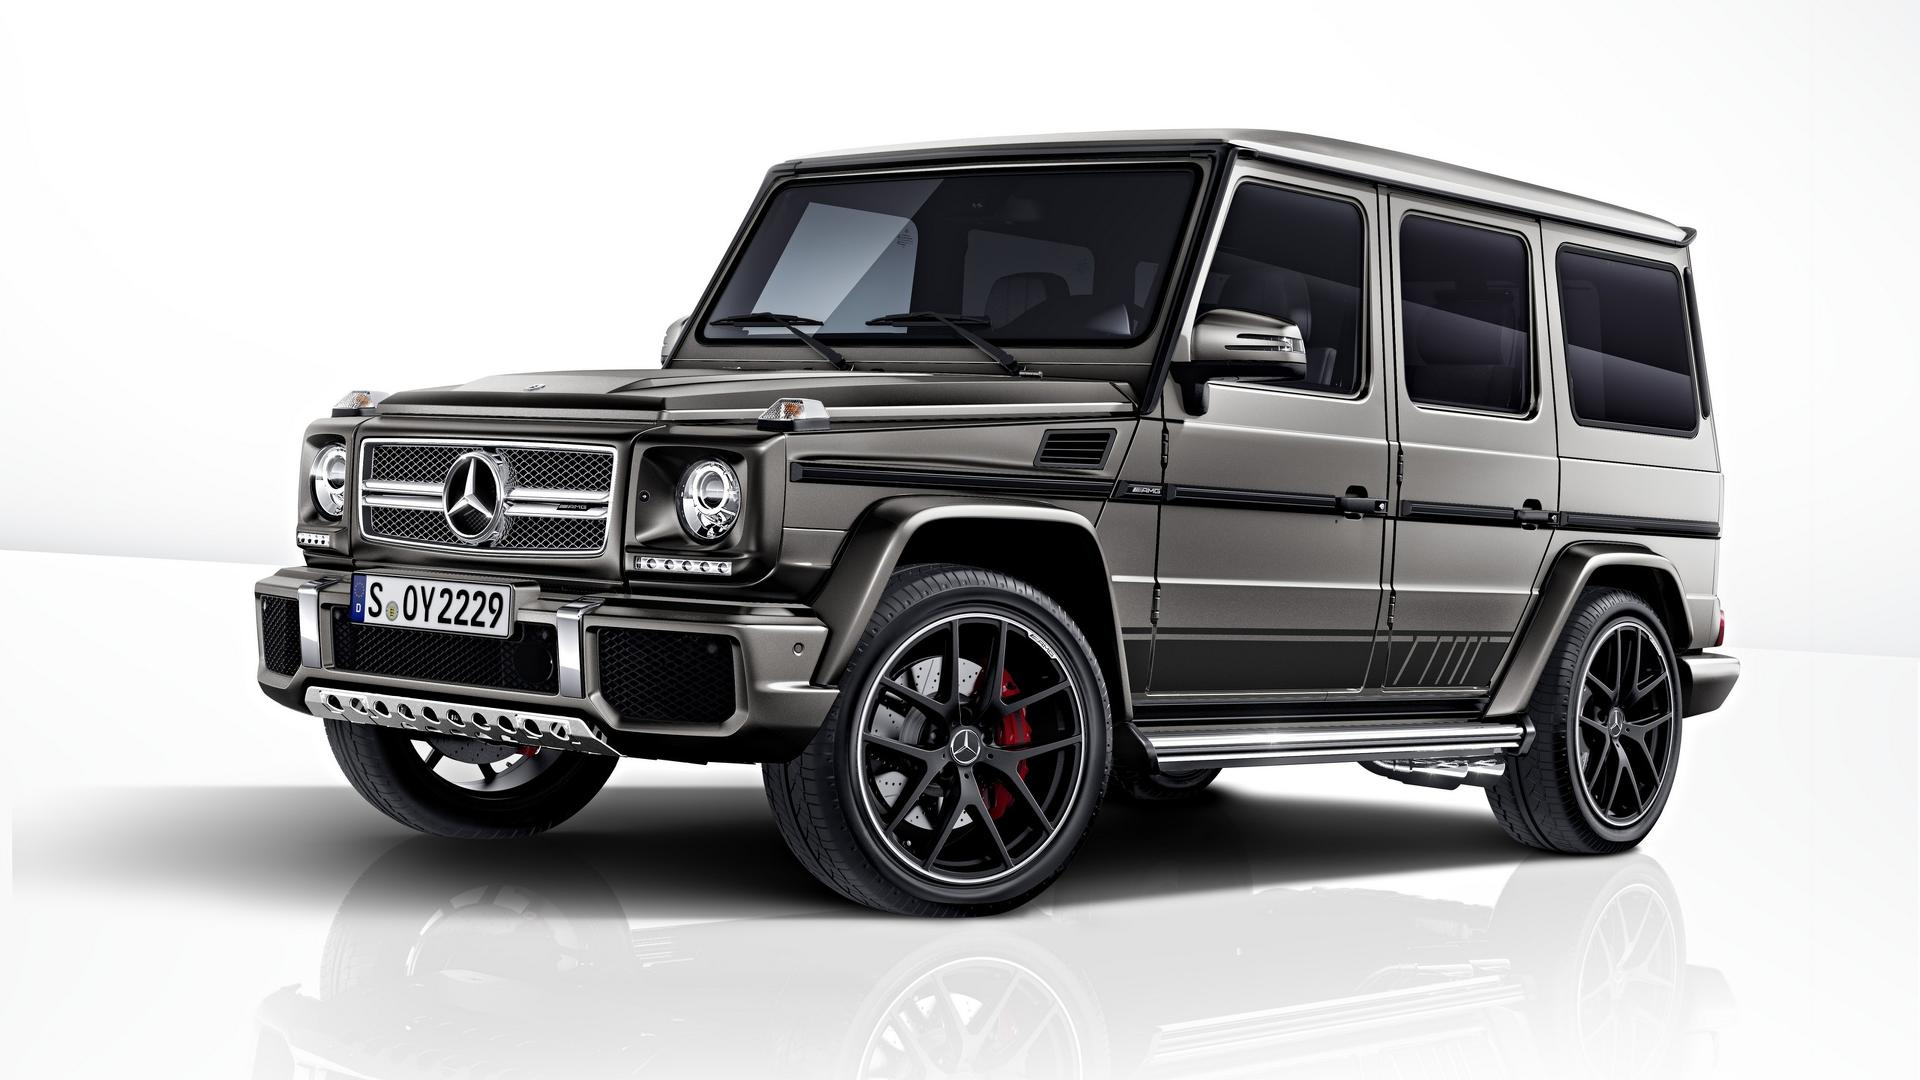 mercedes-amg g63, g65 exclusive edition detailed ahead frankfurt